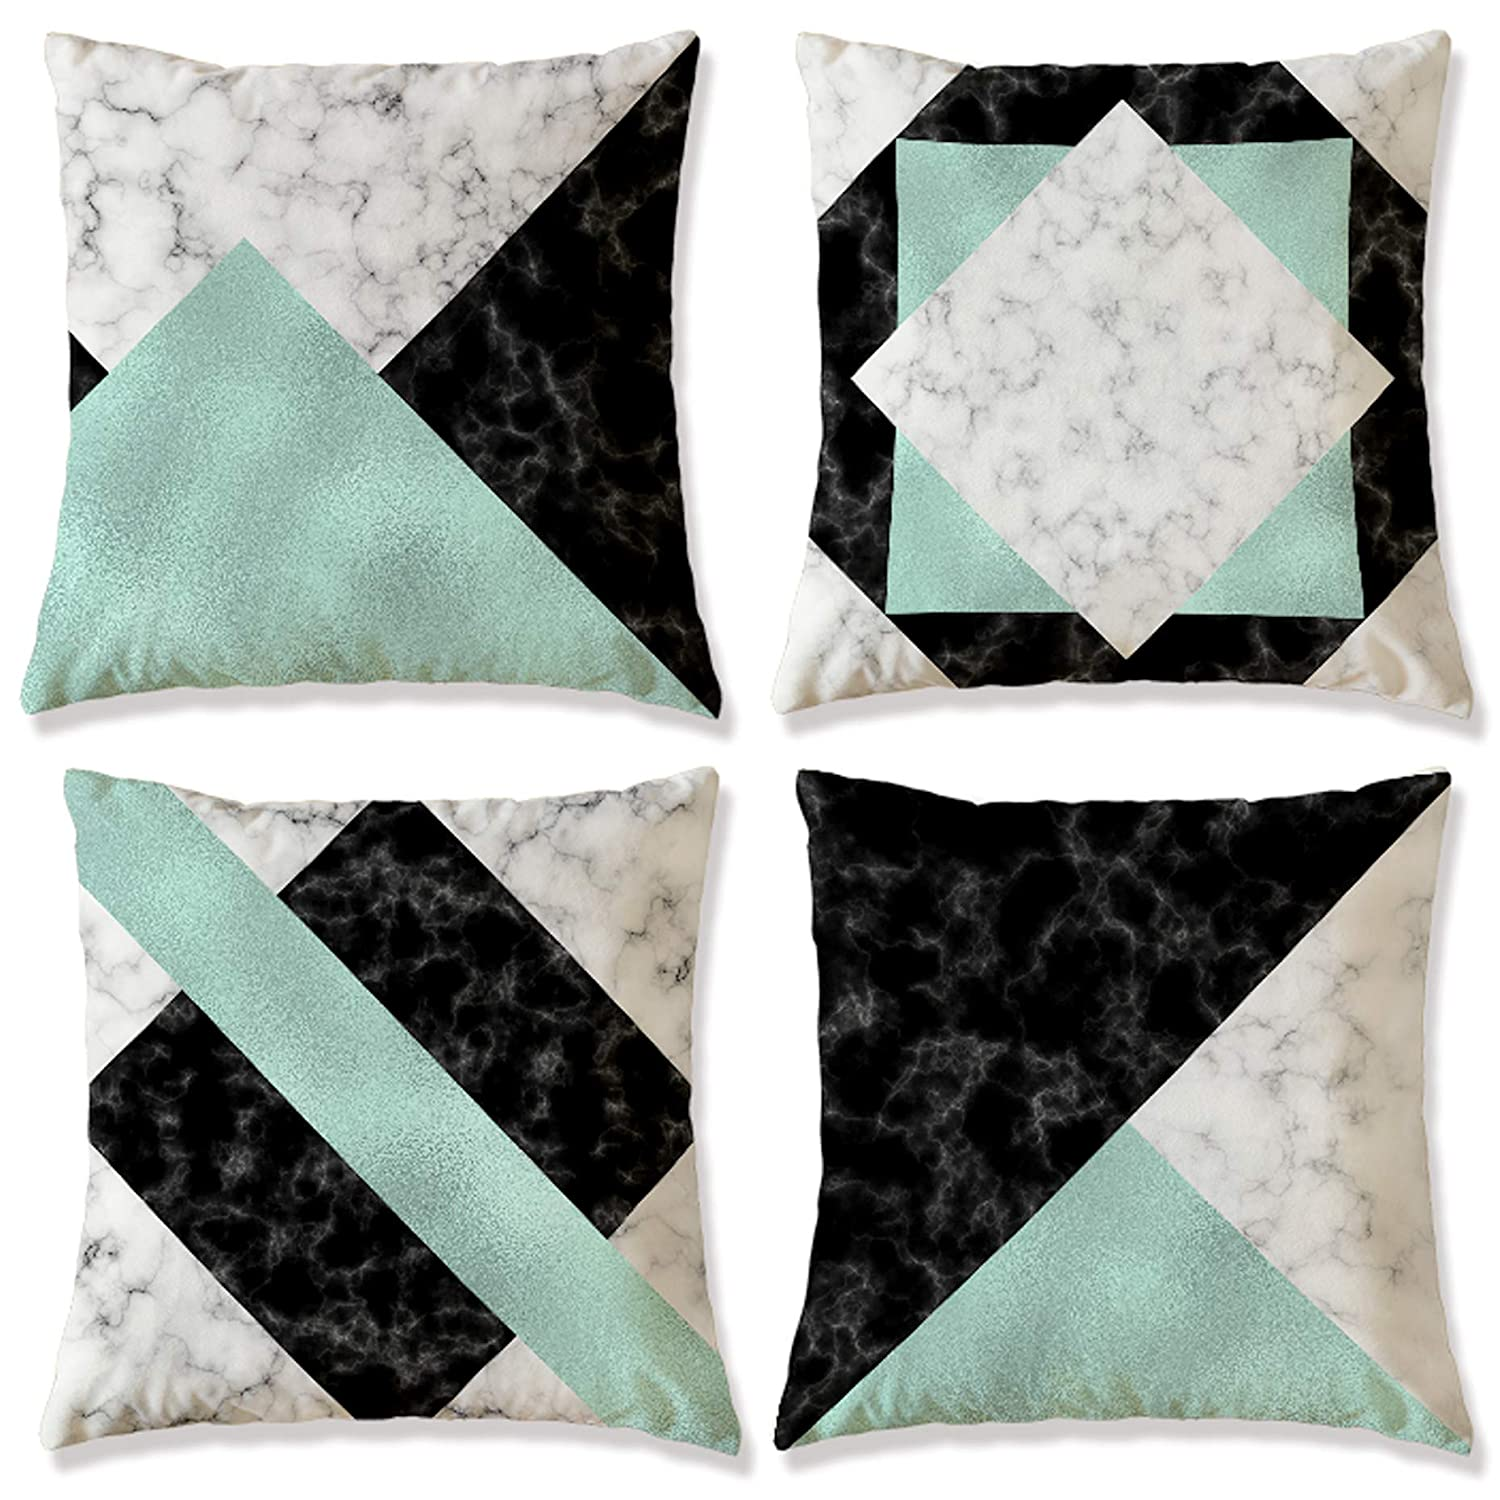 WOMHOPE Set of 4 Casual Flannelette Decorative Throw Pillow Covers Pillowslip Toss Cushion Pillow Cases 18 x 18 Inch for Living Room,Couch,Bed (Green) bed accessories Bed Accessories – Top accessories for bed that every bedroom need 8126ccw28HL